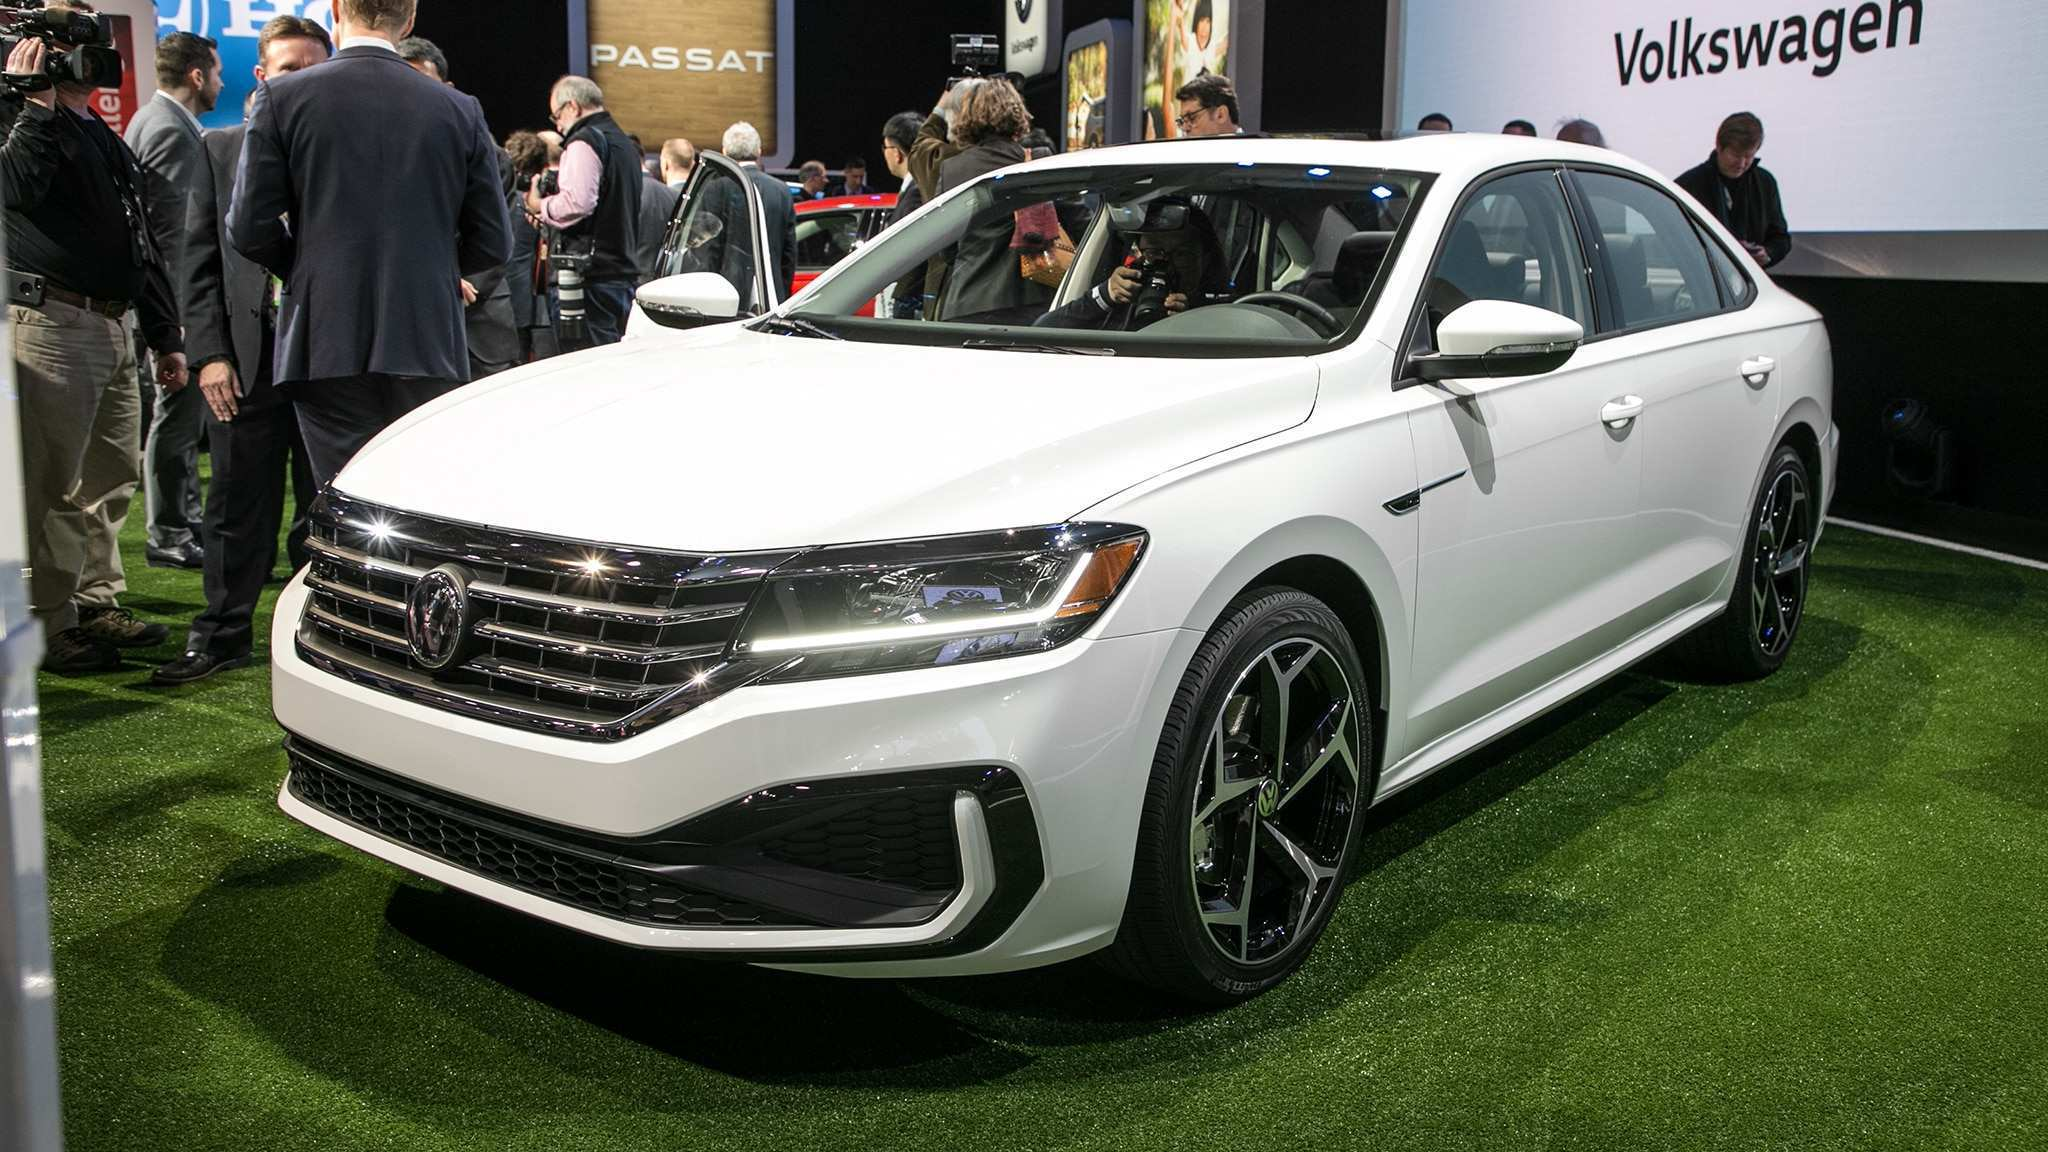 48 New 2020 Vw Passat Price and Review for 2020 Vw Passat